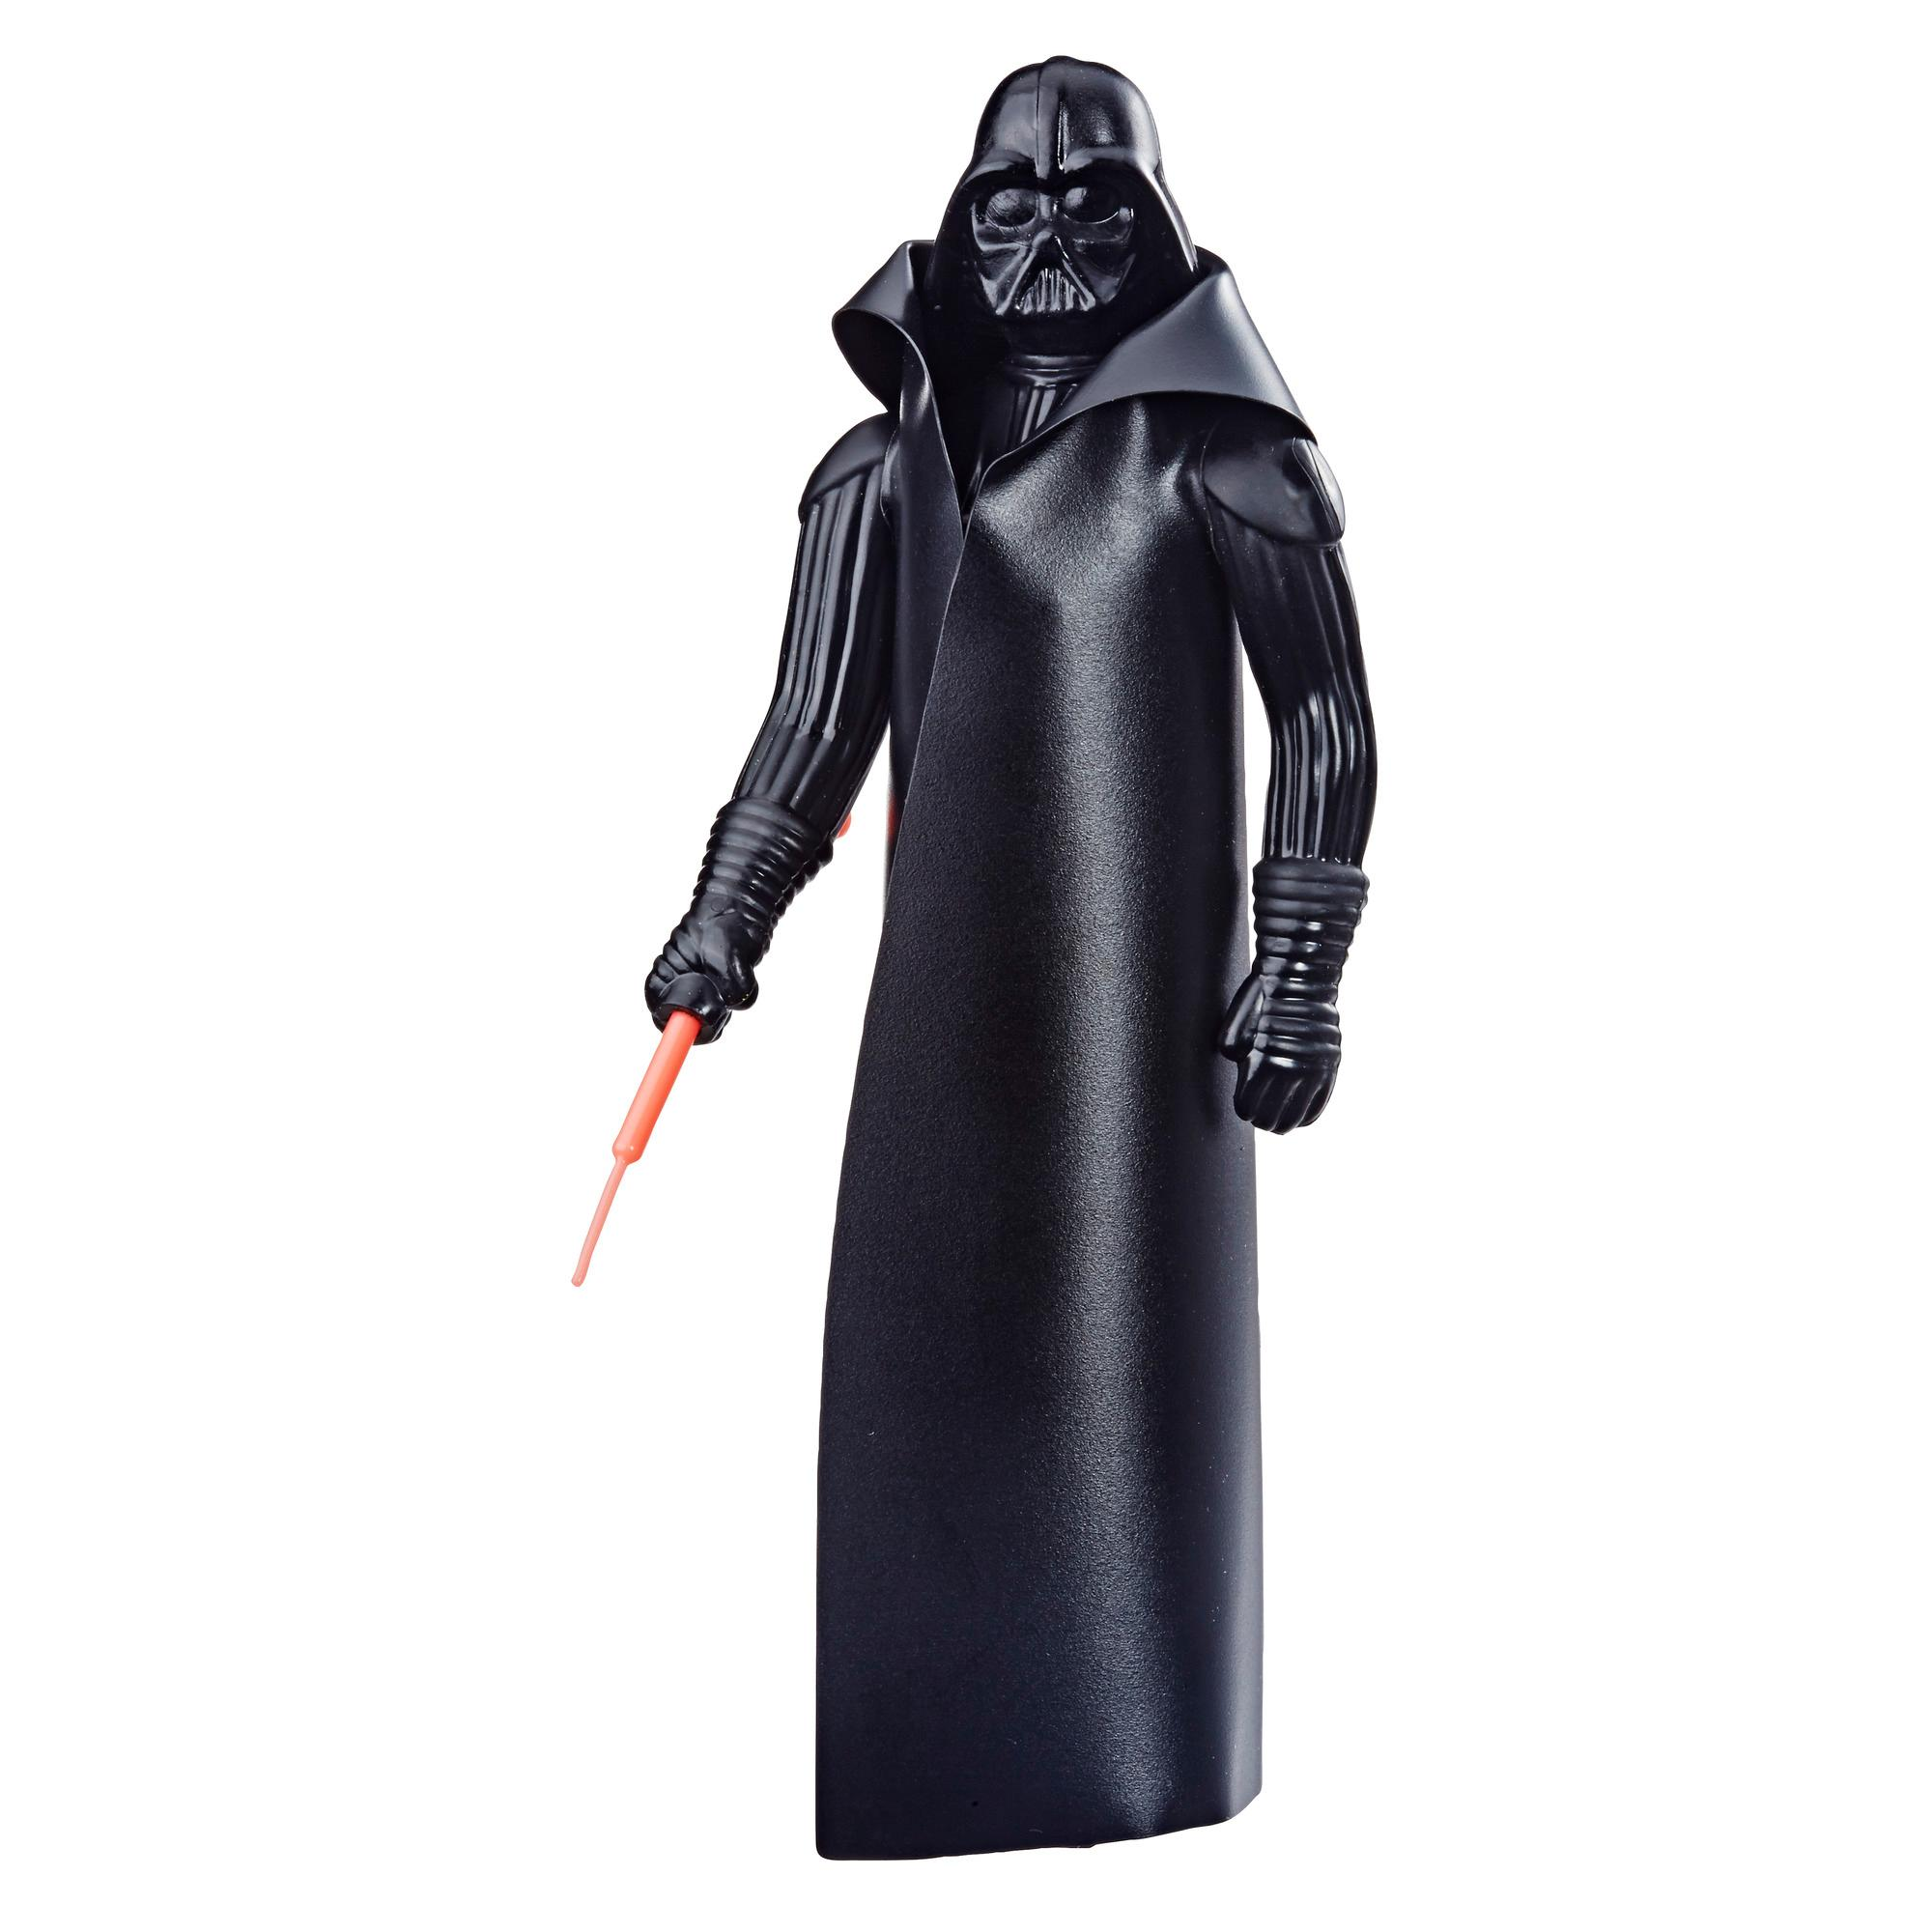 Star Wars Retro Collection Episode IV: A New Hope Darth Vader 3.75-Inch-Scale Action Figure Toy – Inspired by Classic 1970s-Sculpt and Packaging Collectible Star Wars Figure